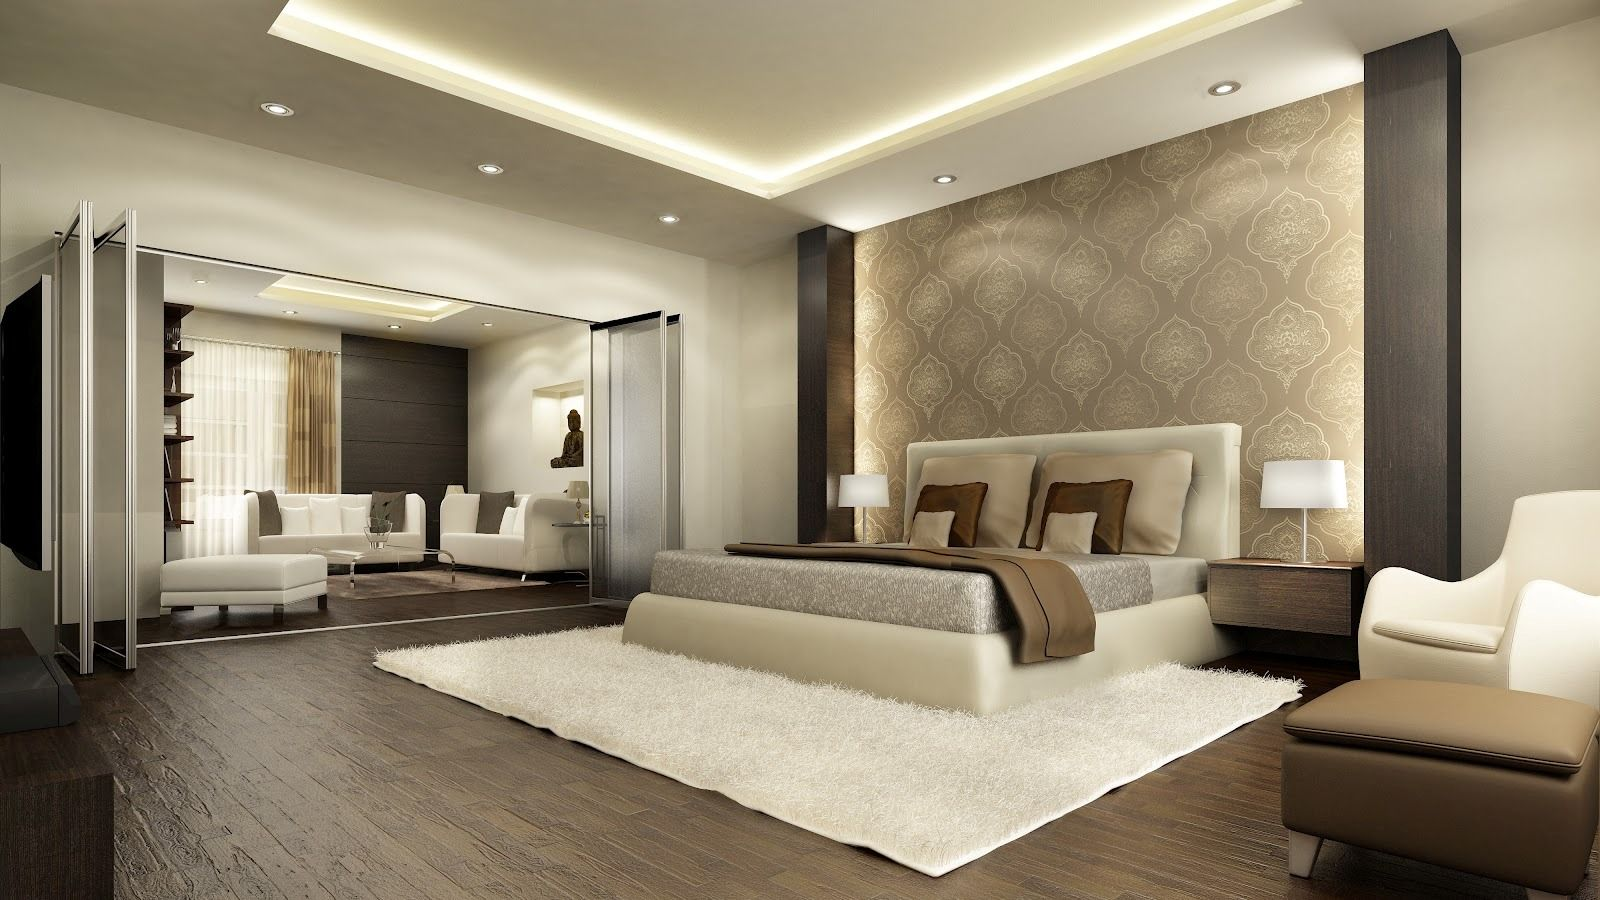 Luxury Bedroom Designs Pictures New On Classic Design Ideas Modern